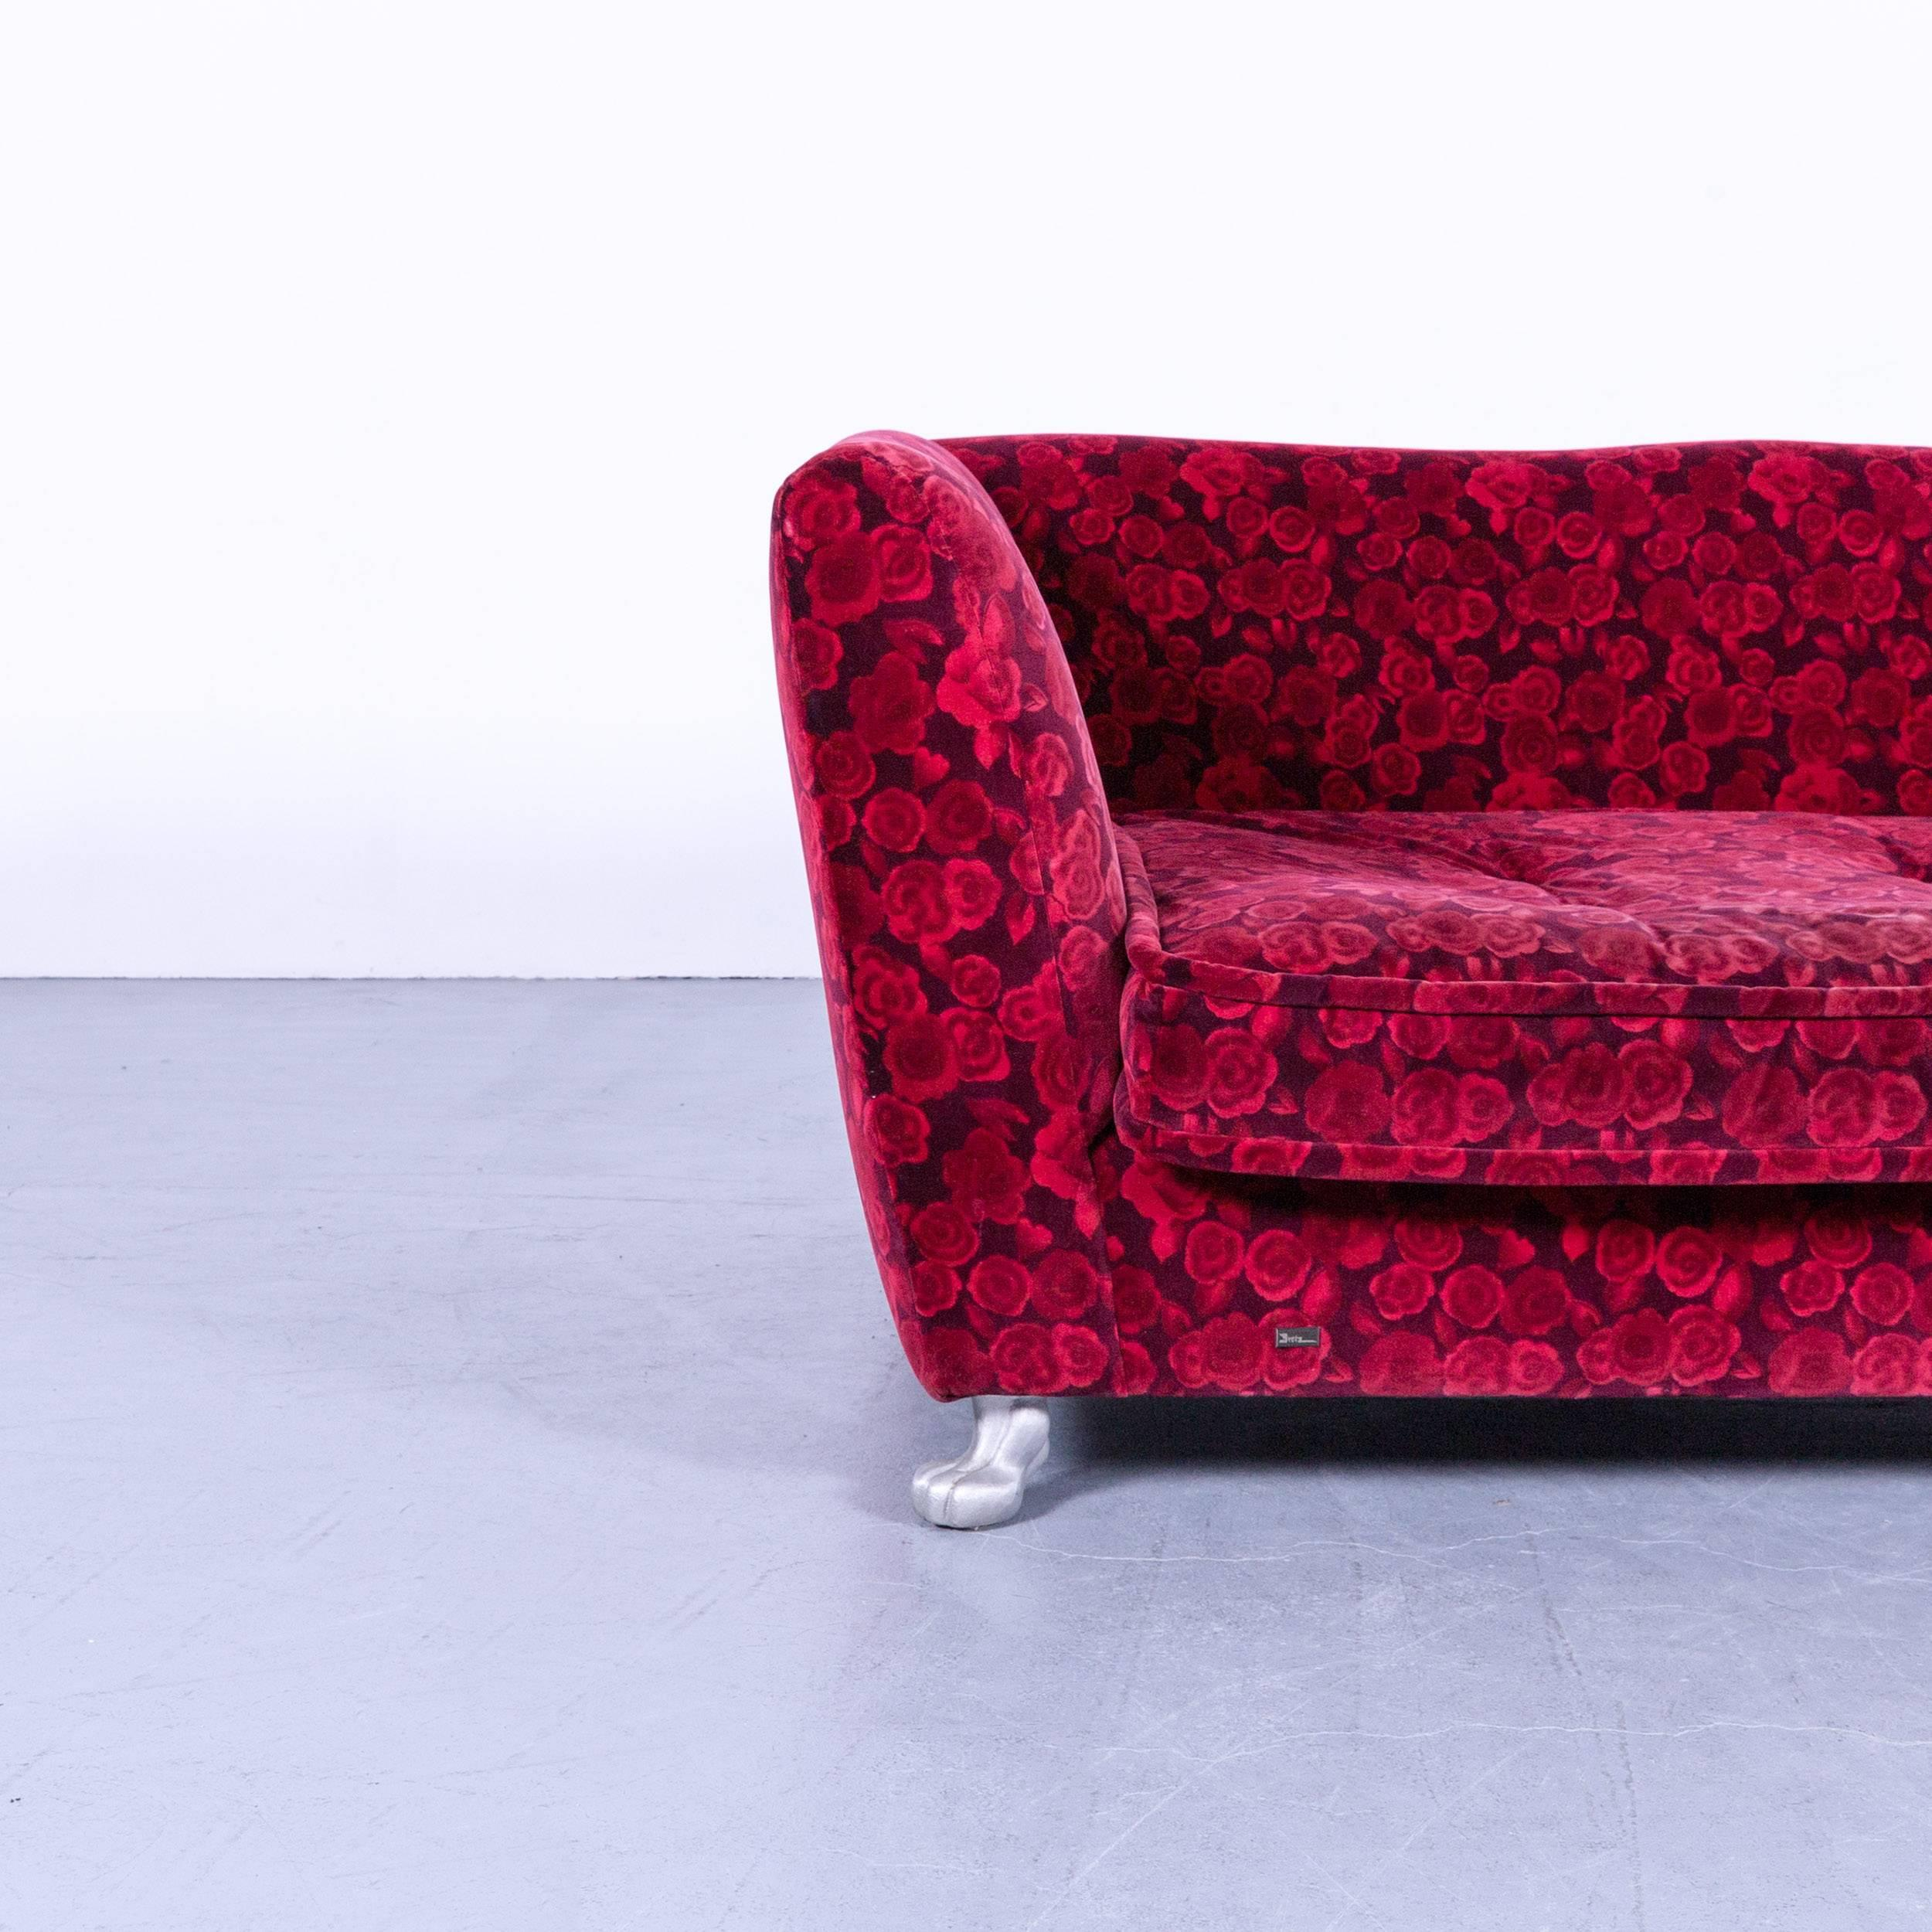 Bretz Couch Bretz Monster Sofa Red Fabric Three-seat Couch Rose ...